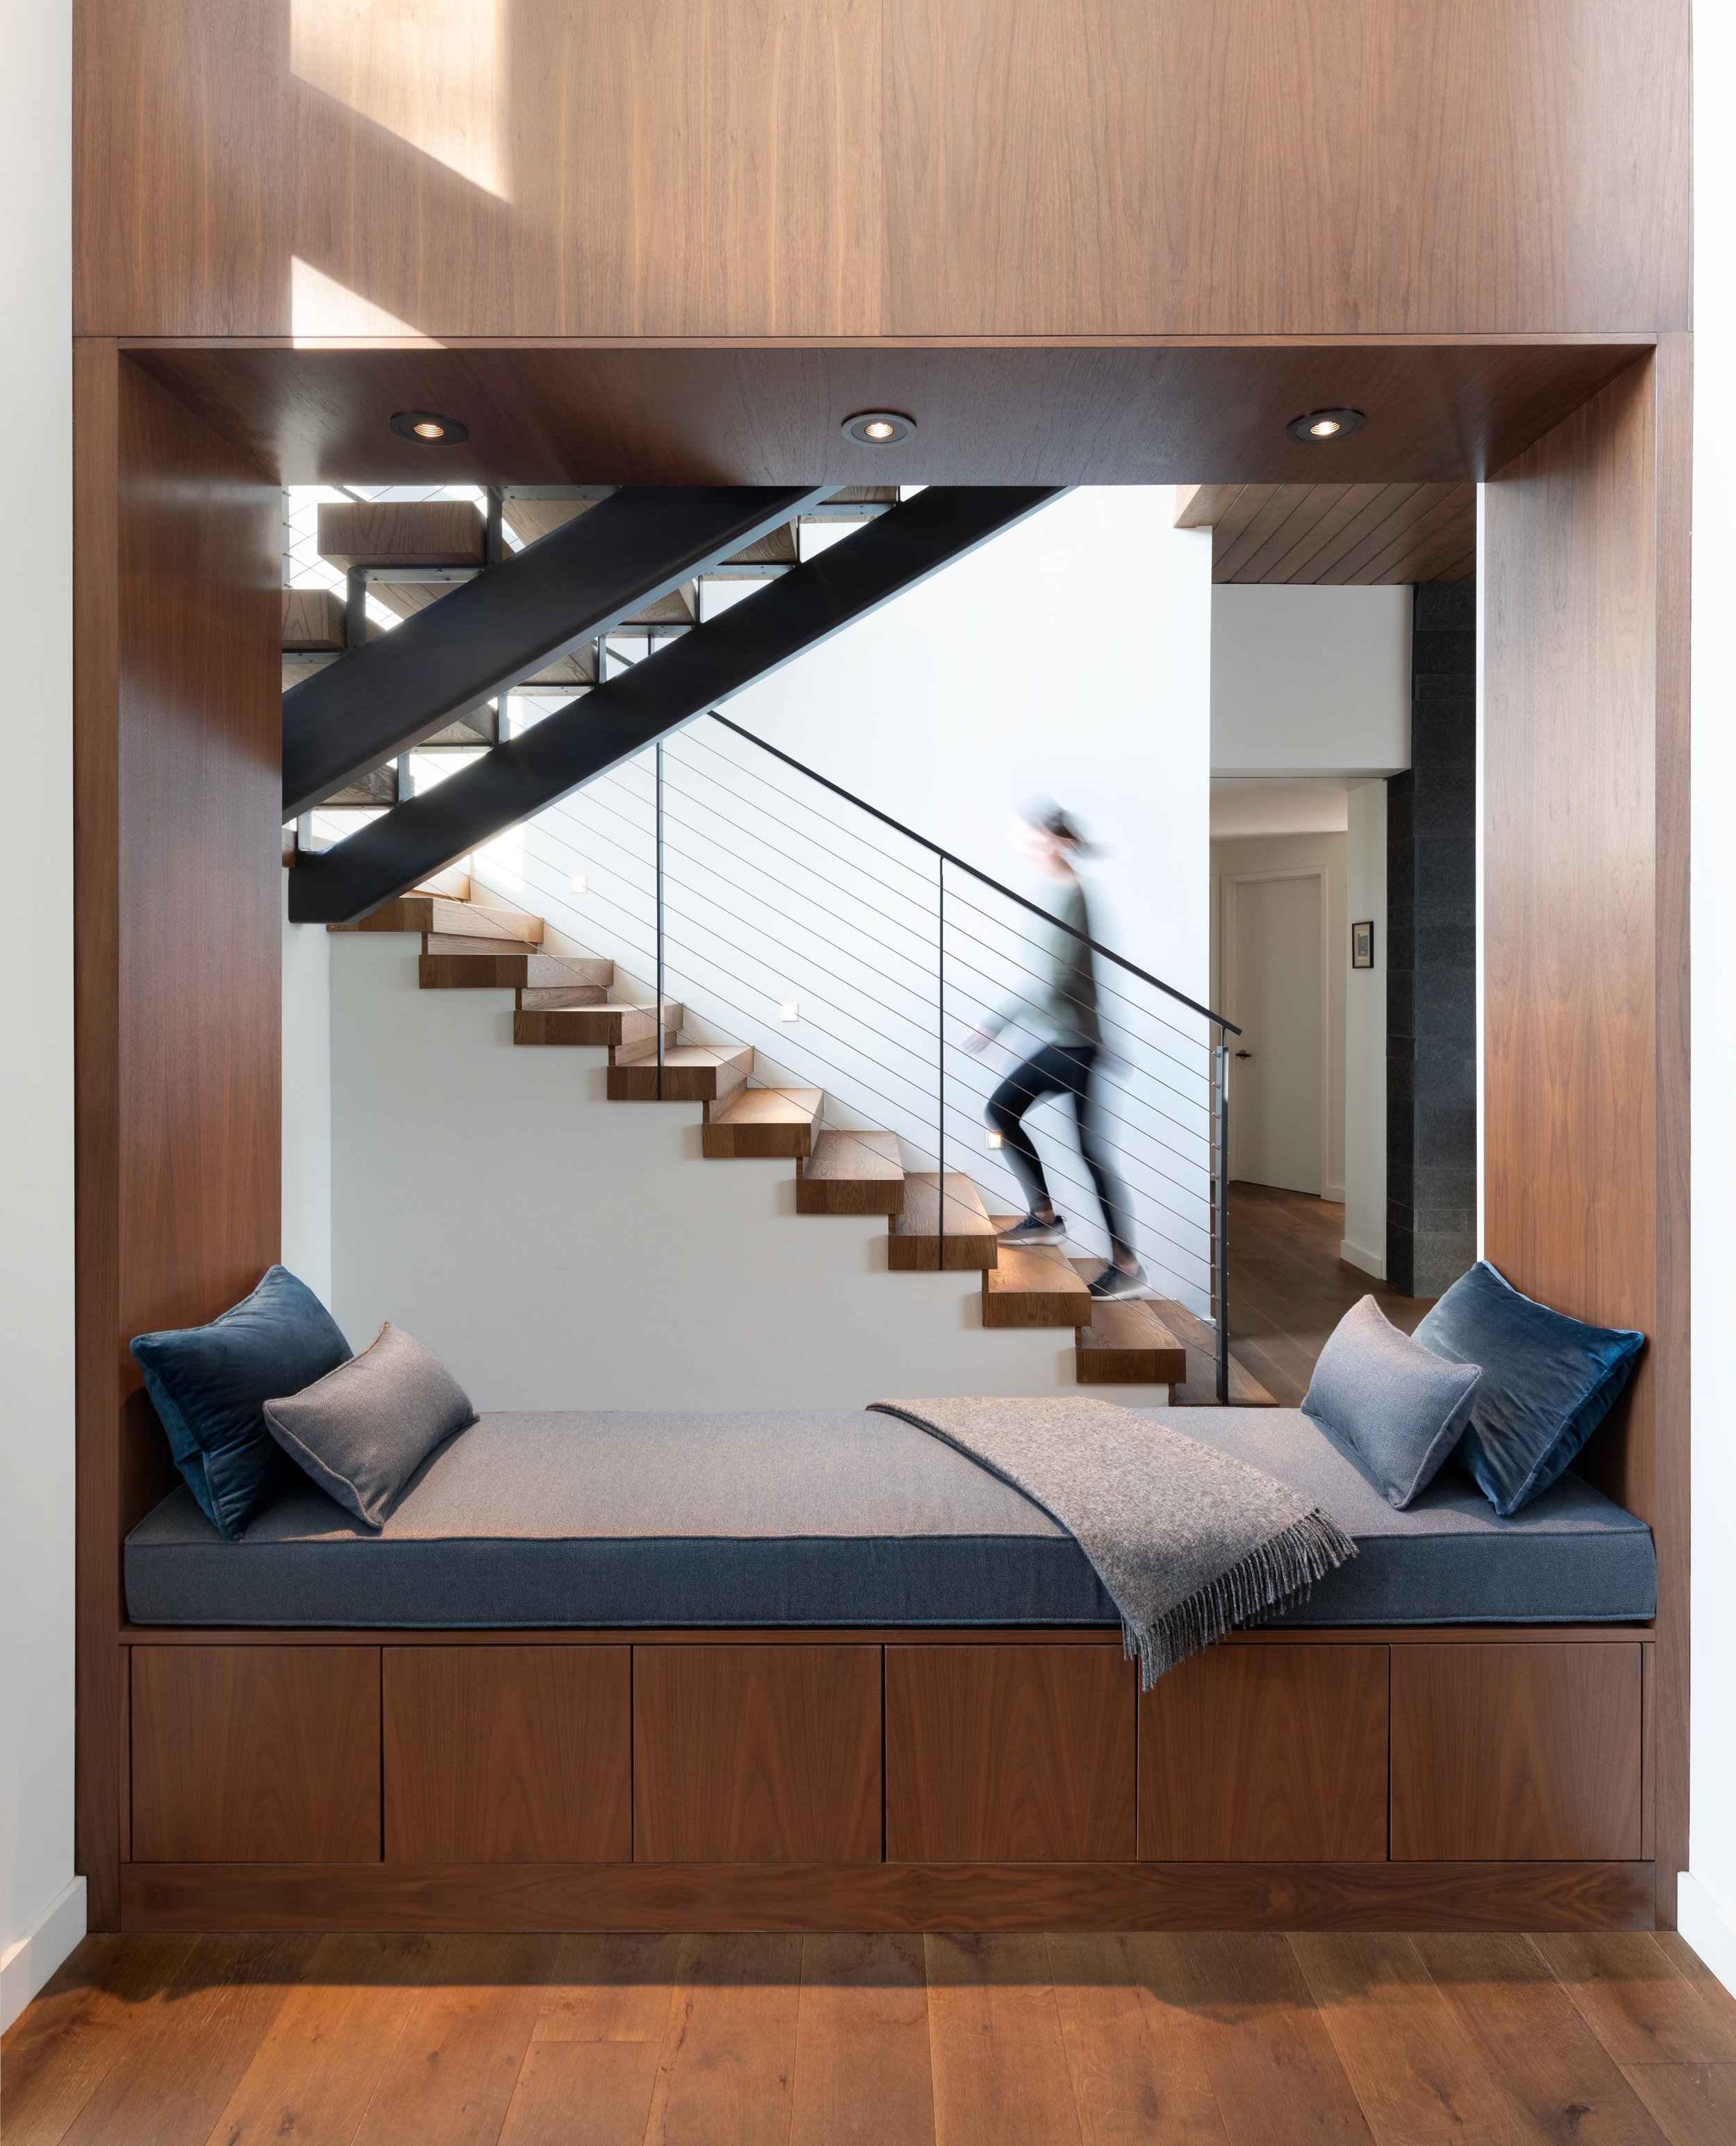 Handcrafted stair with bench seating is the heart of this purposeful home.  (Photograph by Eric Staudenmaier)